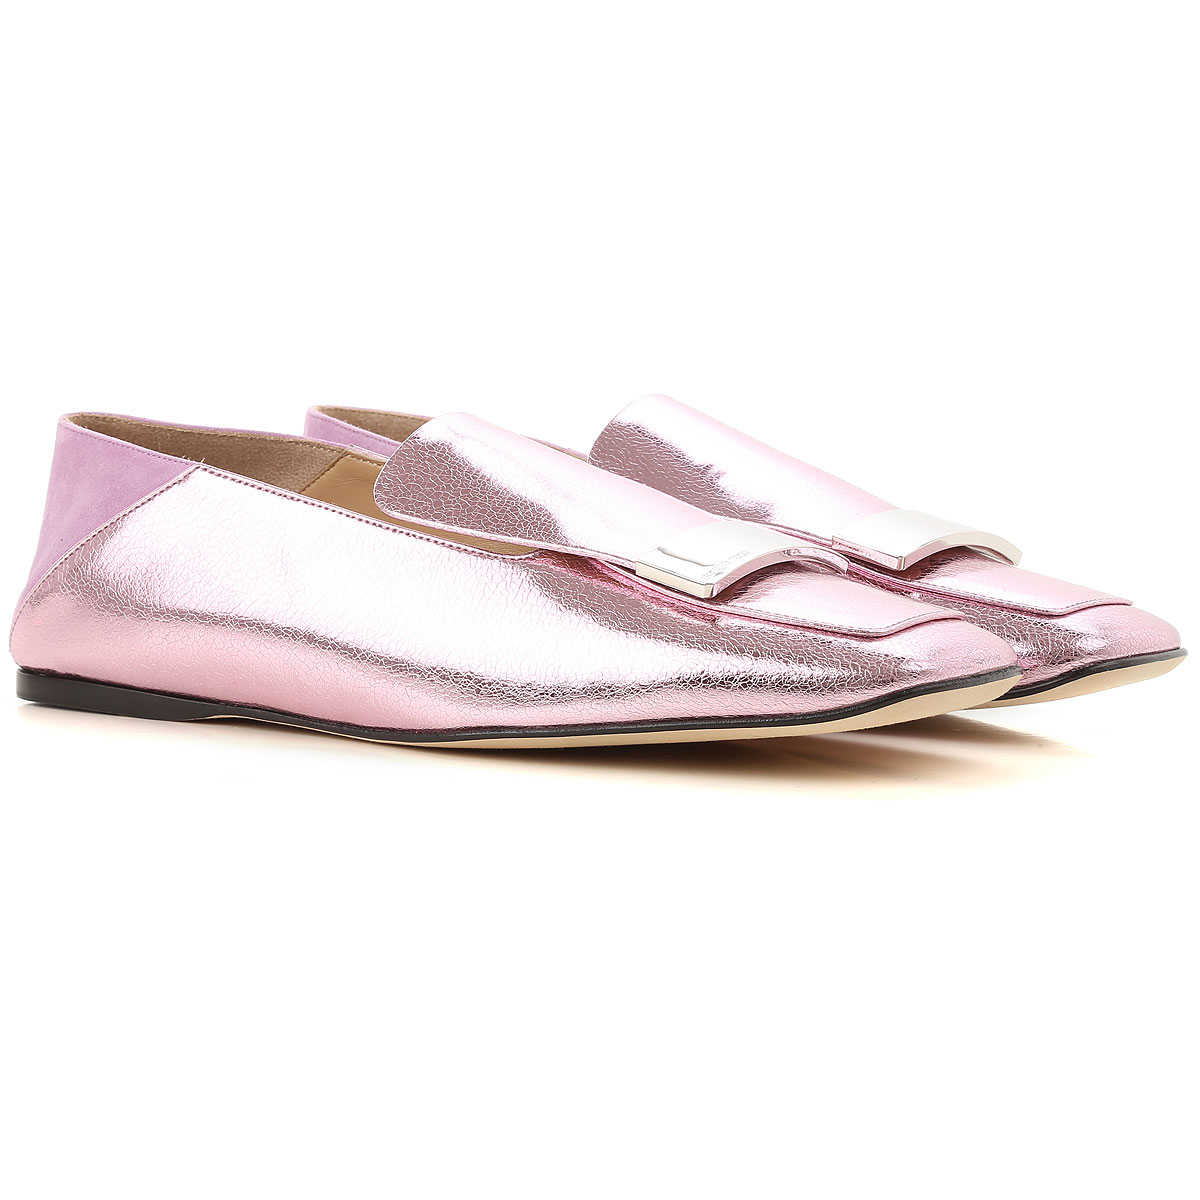 Sergio Rossi Loafers for Women On Sale in Outlet